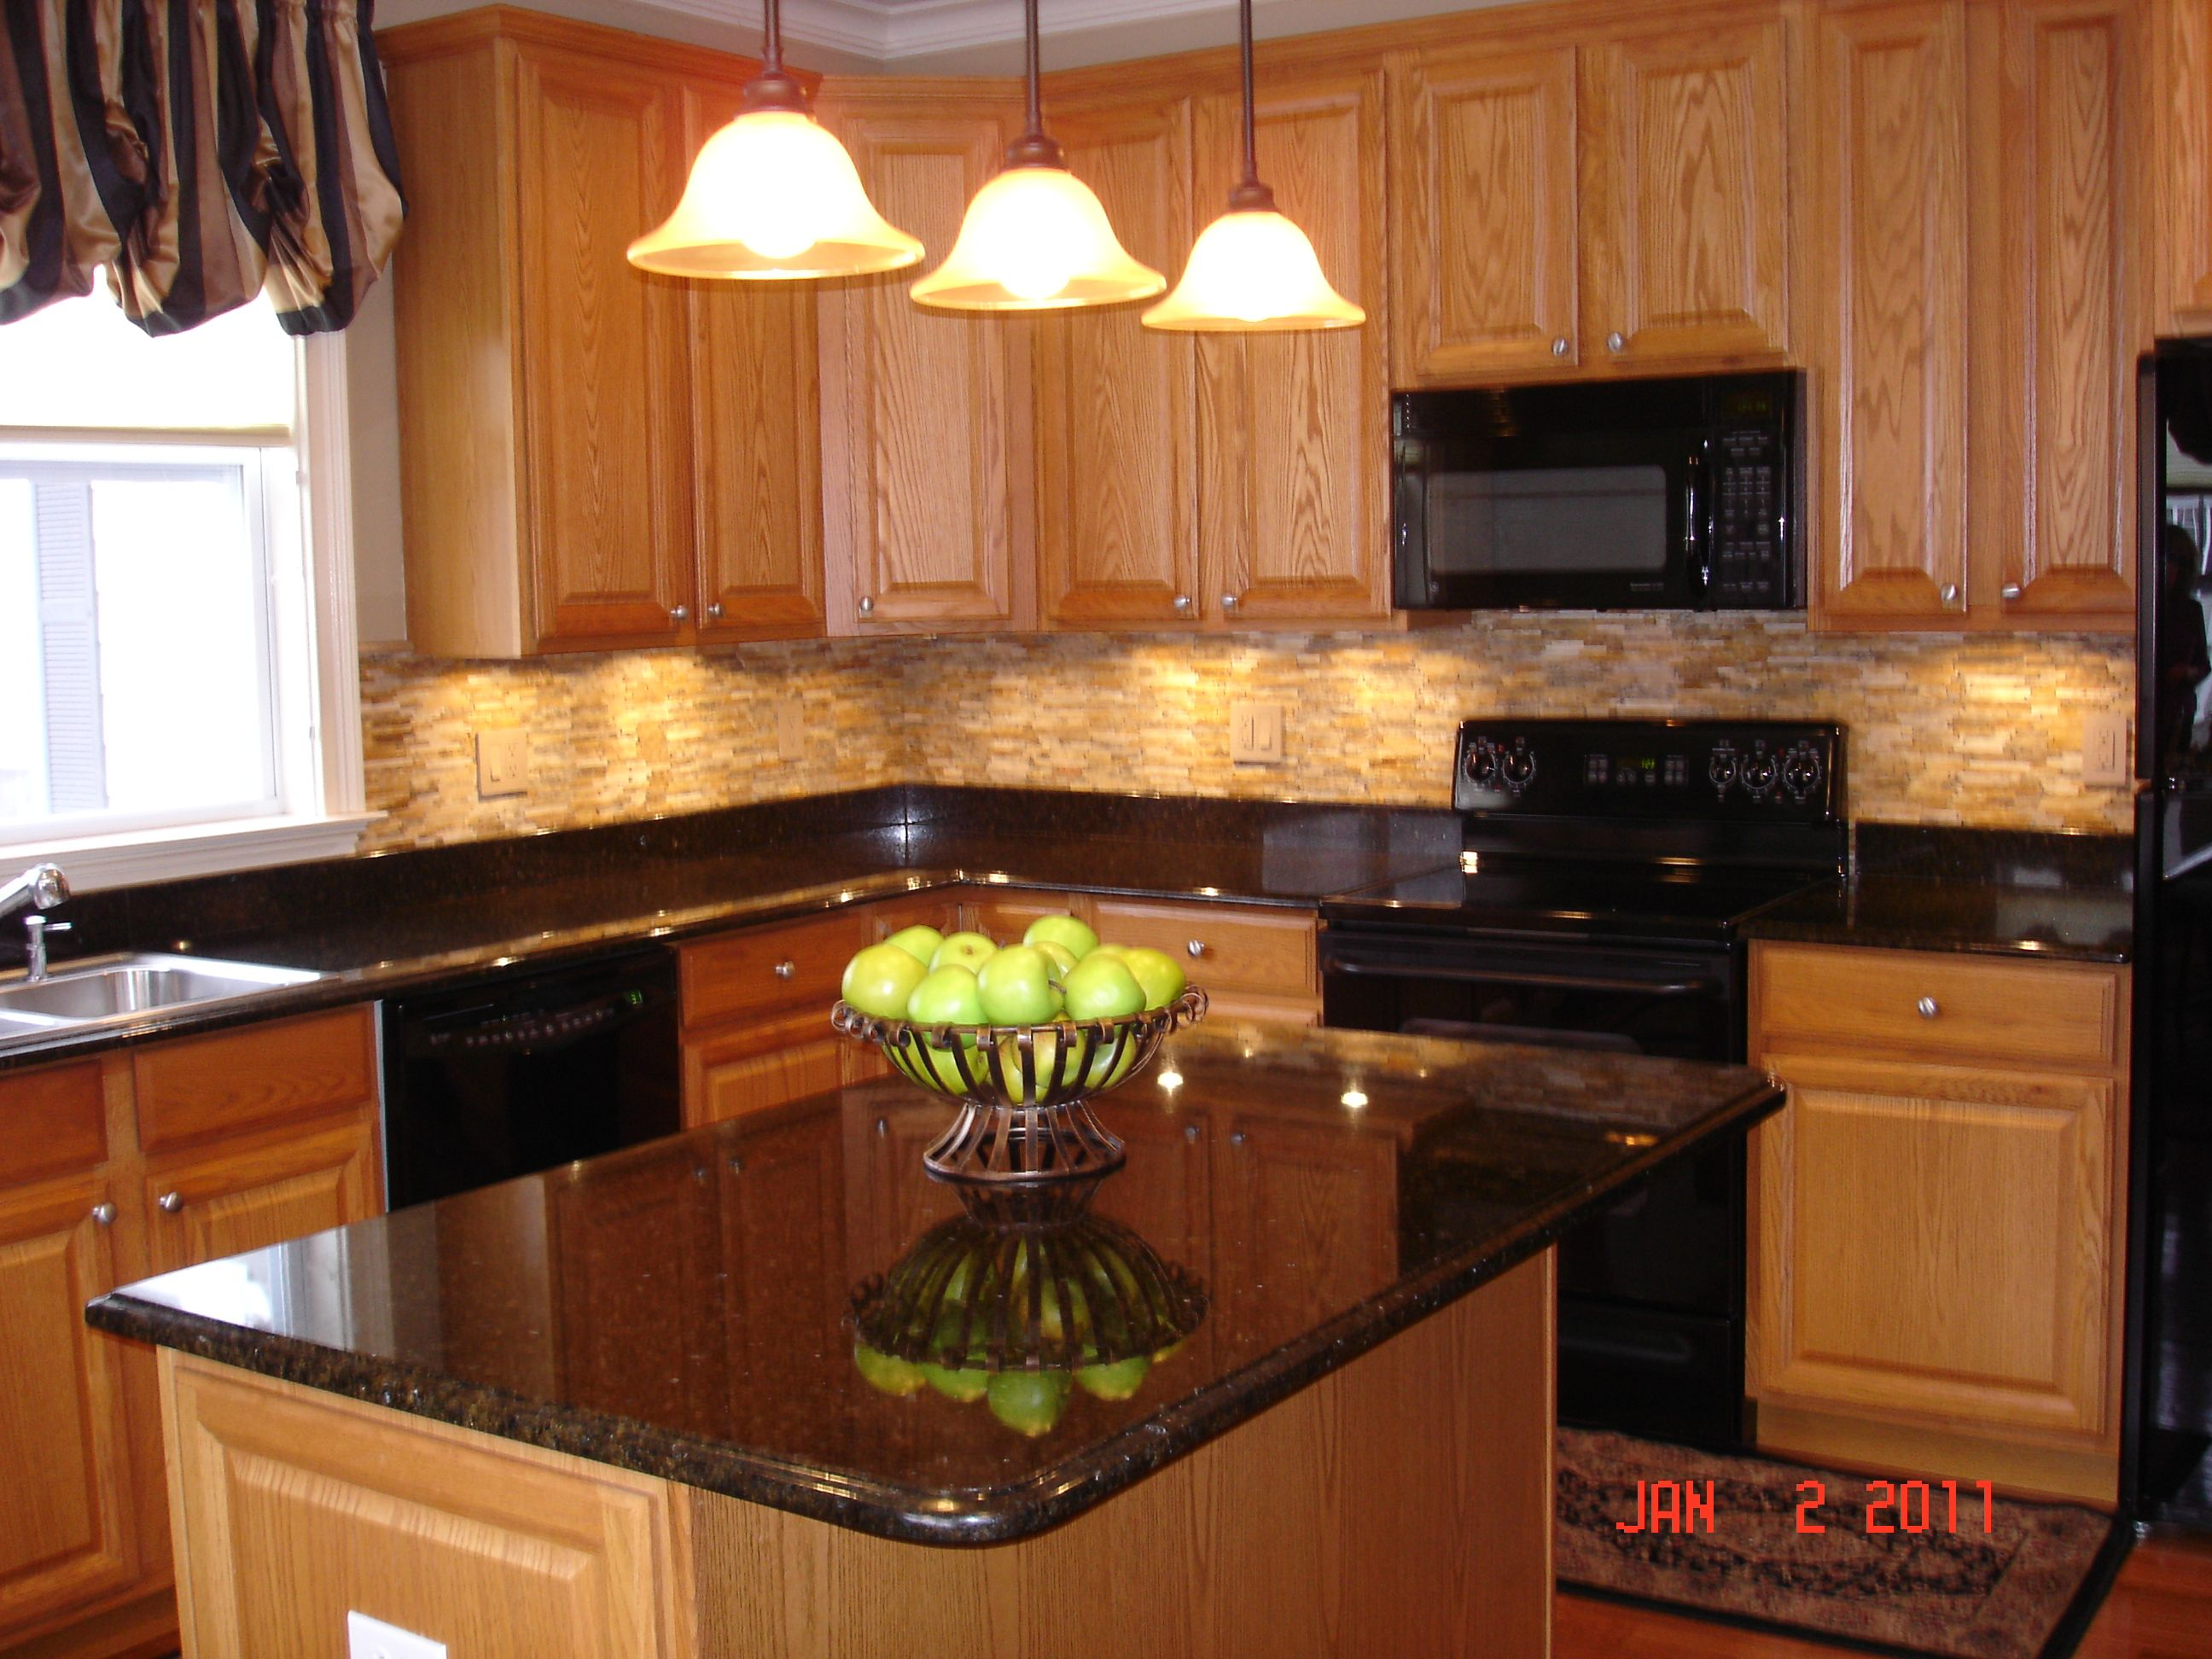 Used Kitchen Countertops discount kitchen cabinets | used marble countertops, used bathroom